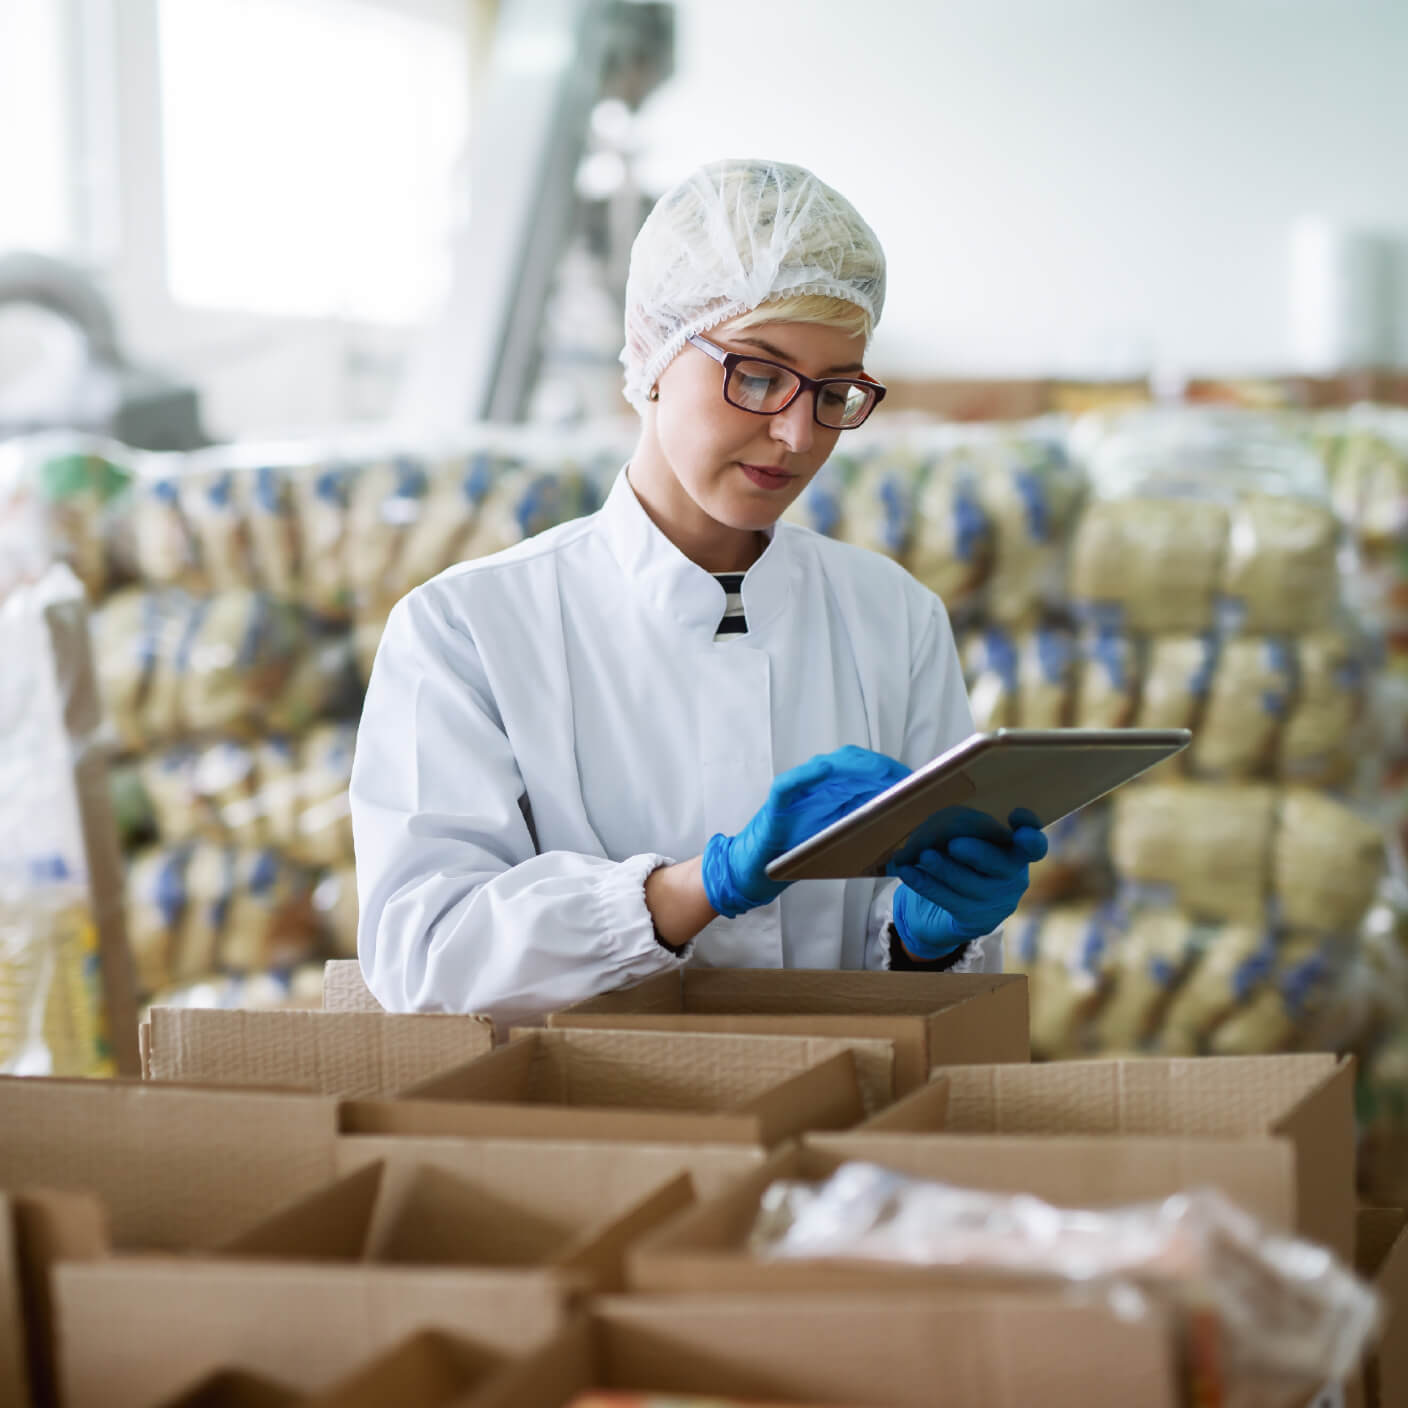 food warehouse management for quality control